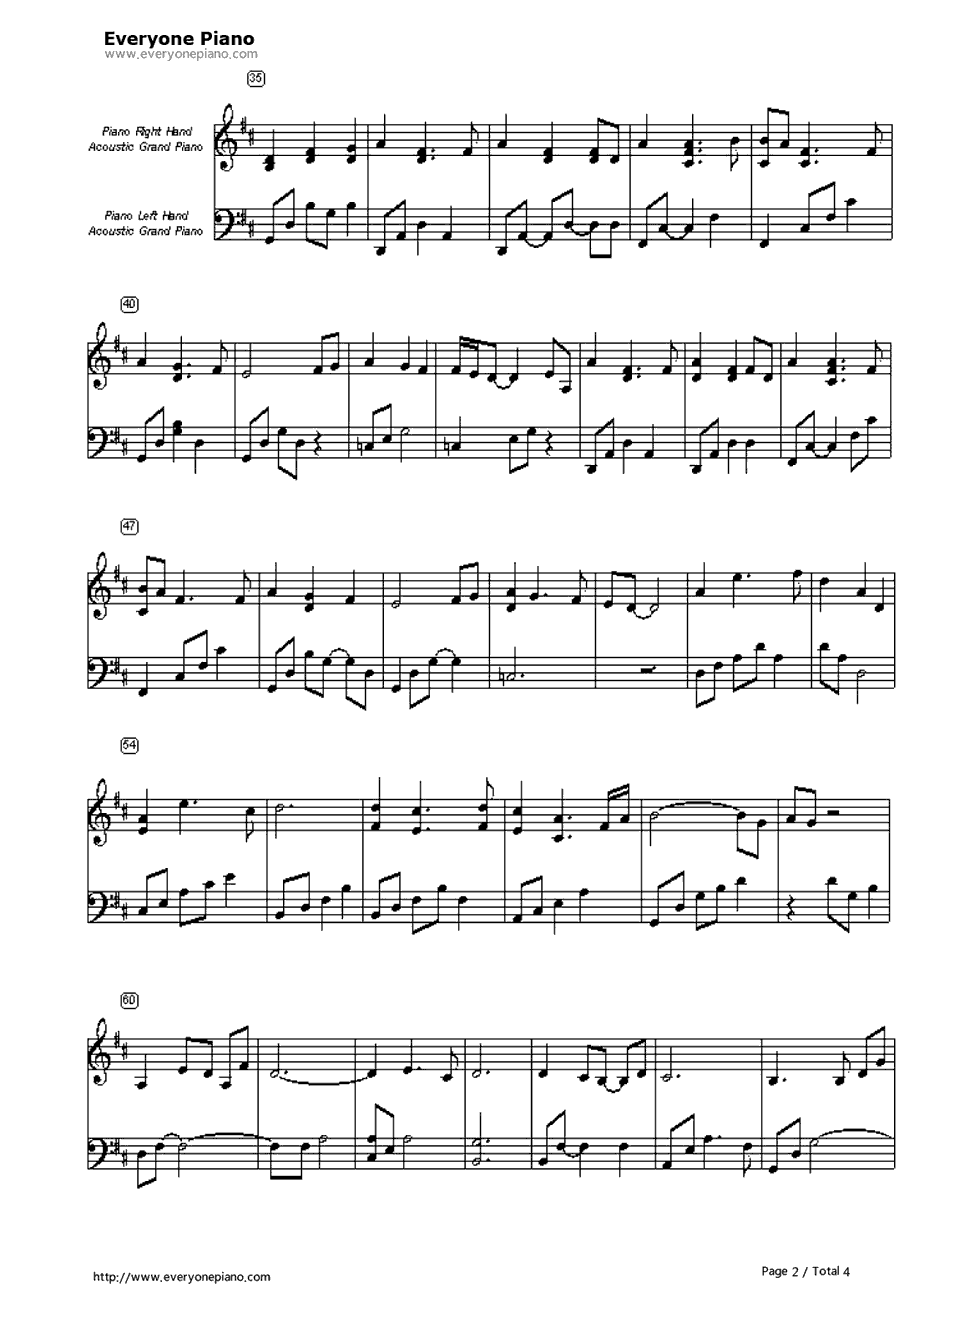 Open arms journey stave preview 2 free piano sheet music piano listen now print sheet open arms journey stave preview 2 hexwebz Images